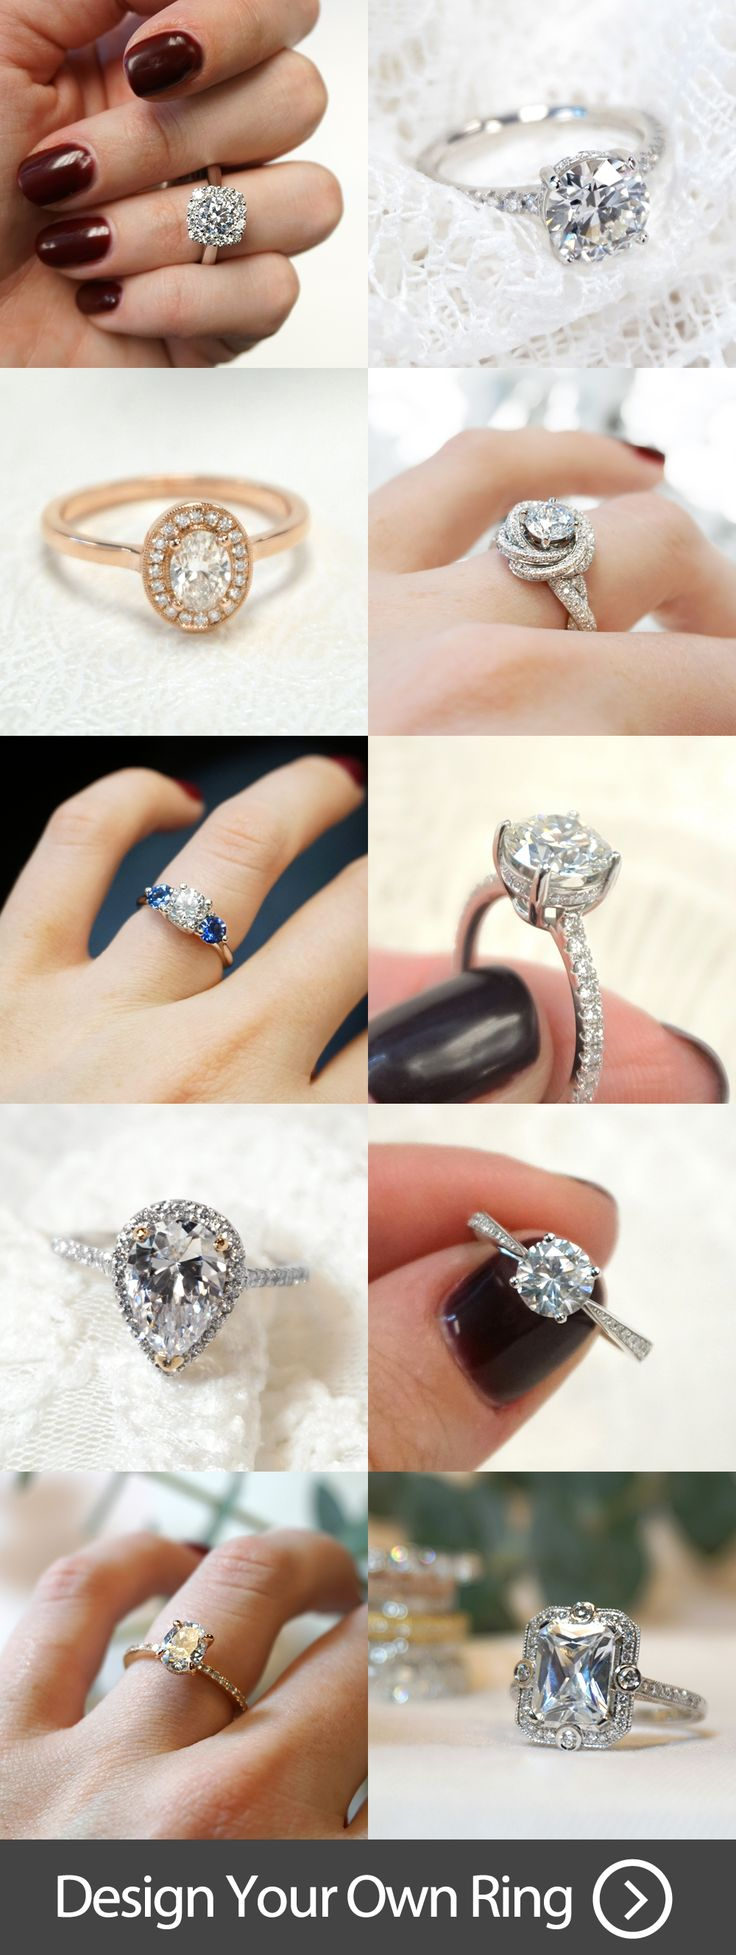 Tap for more info and discover 1,000+ unique engagement rings. Customize or design your own one of a kind ring!